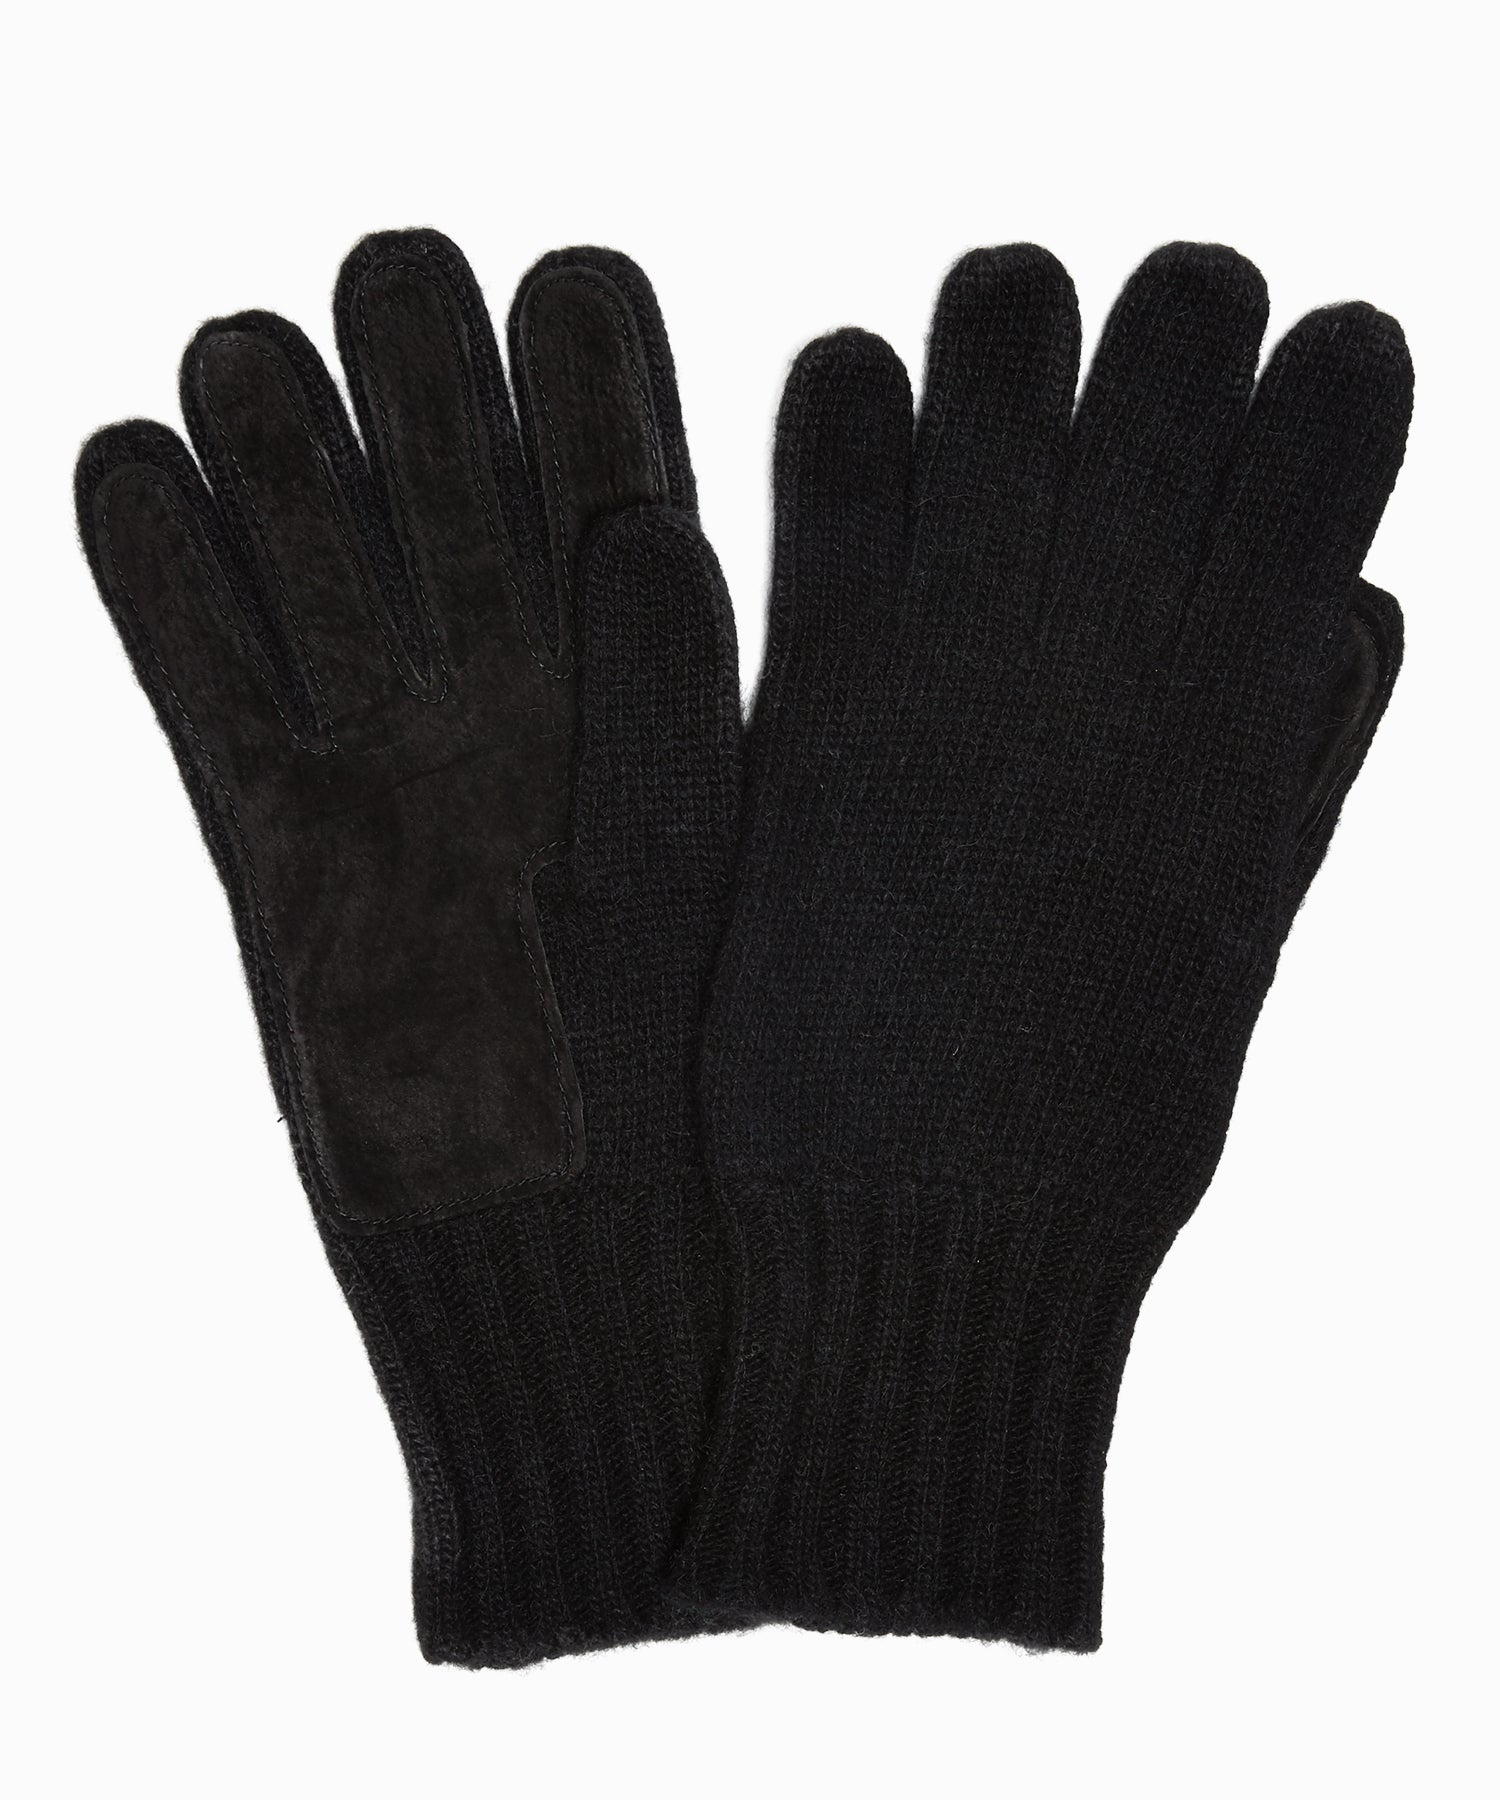 Dents Cardiff Cashmere Knitted Gloves with Suede Palm Patch in Black